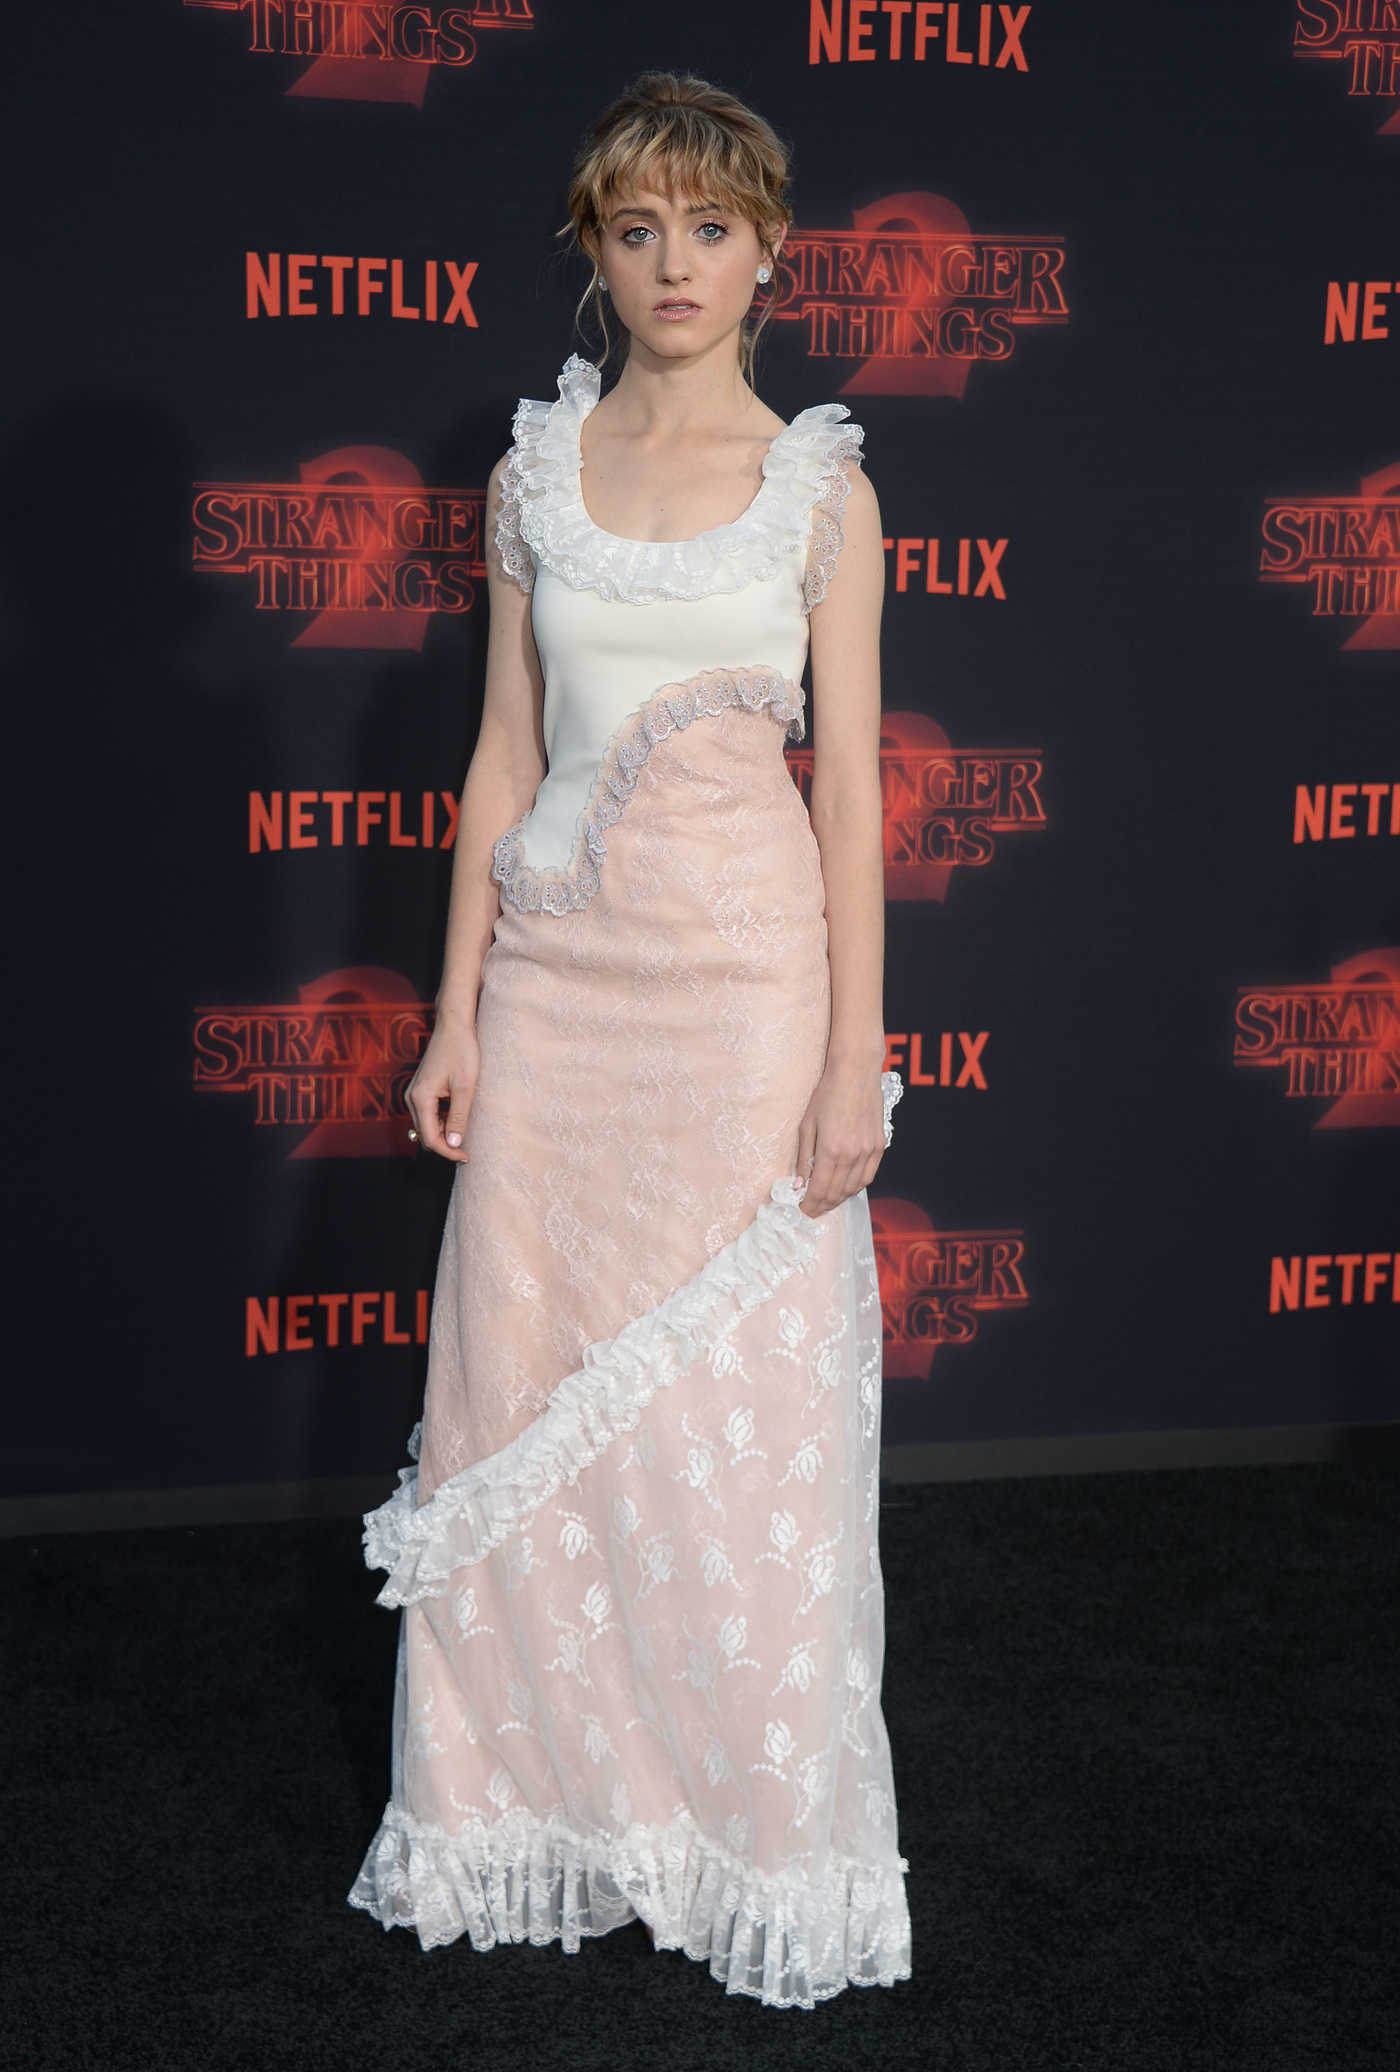 Natalia Dyer at the Stranger Things Season 2 Premiere in Los Angeles 10/26/2017